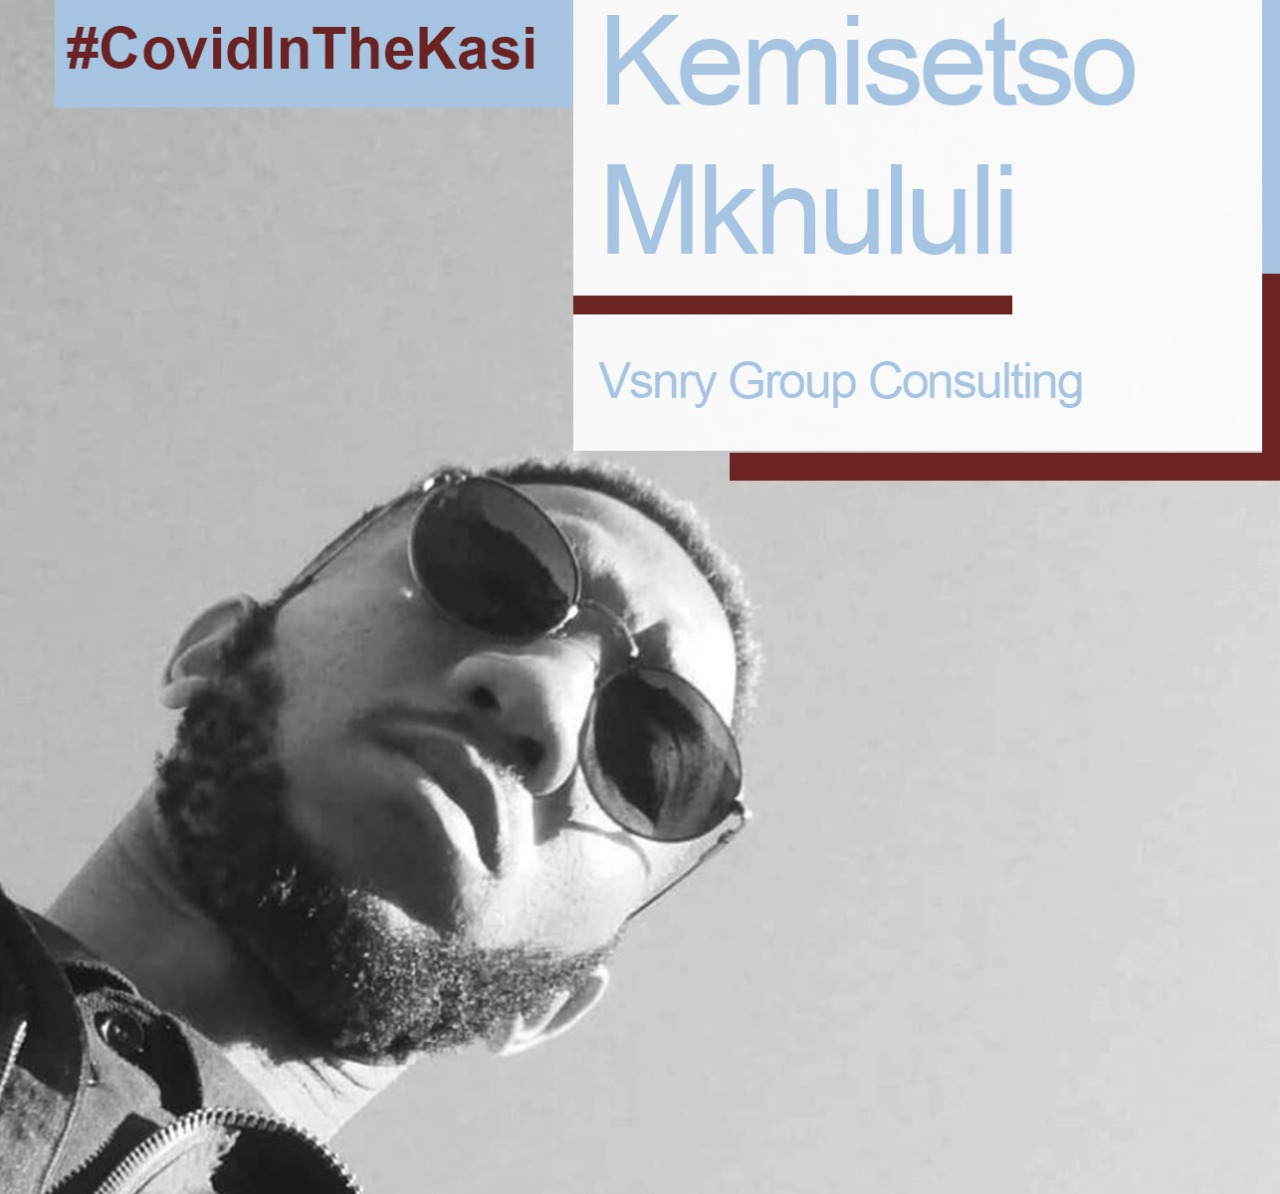 Covid in the Kasi citizen journalist, Kemisetso